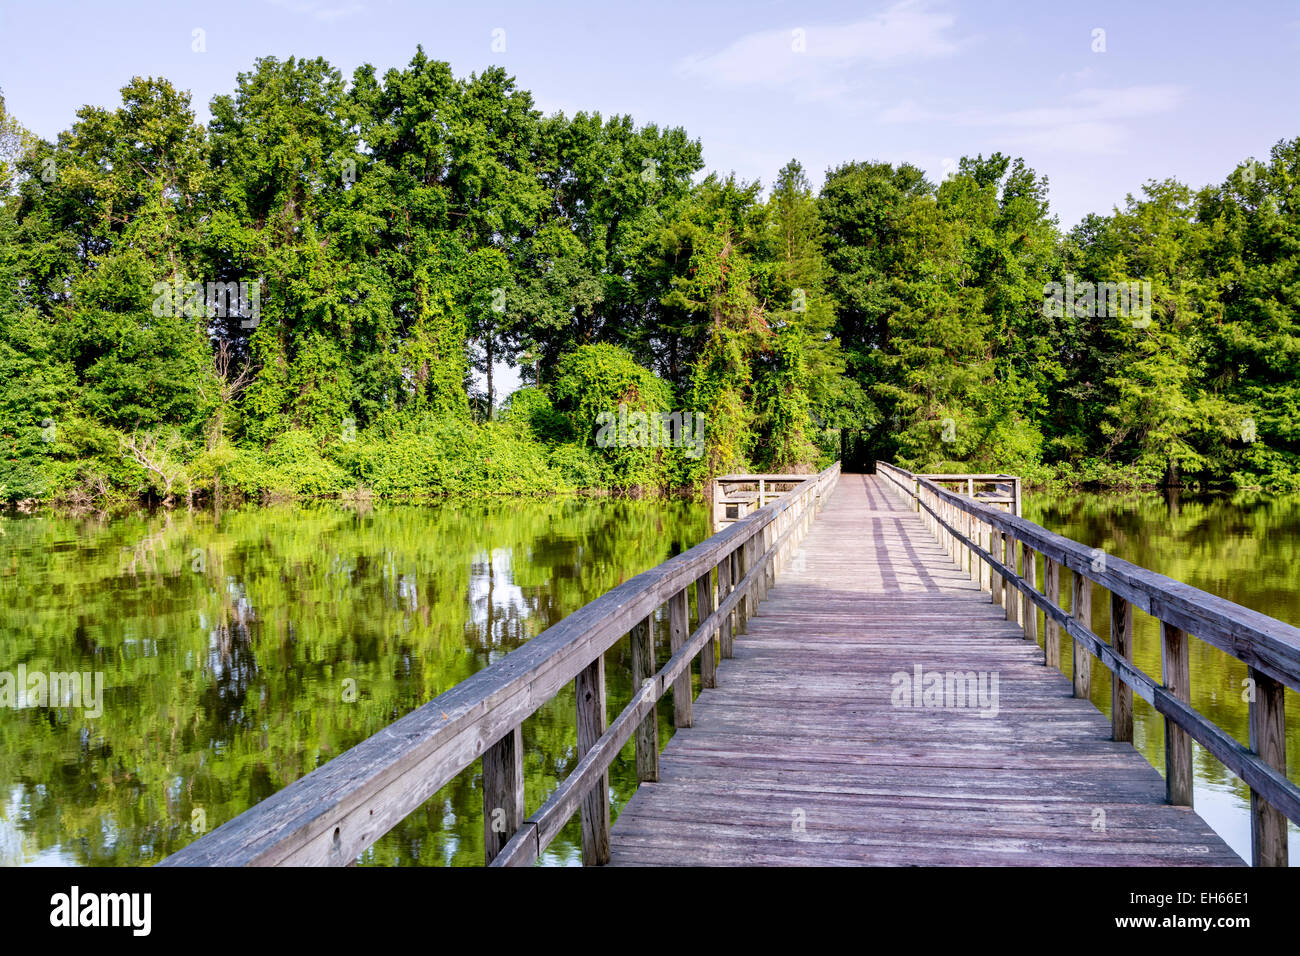 Wood walkway leads over a swamp in Alabama - Stock Image